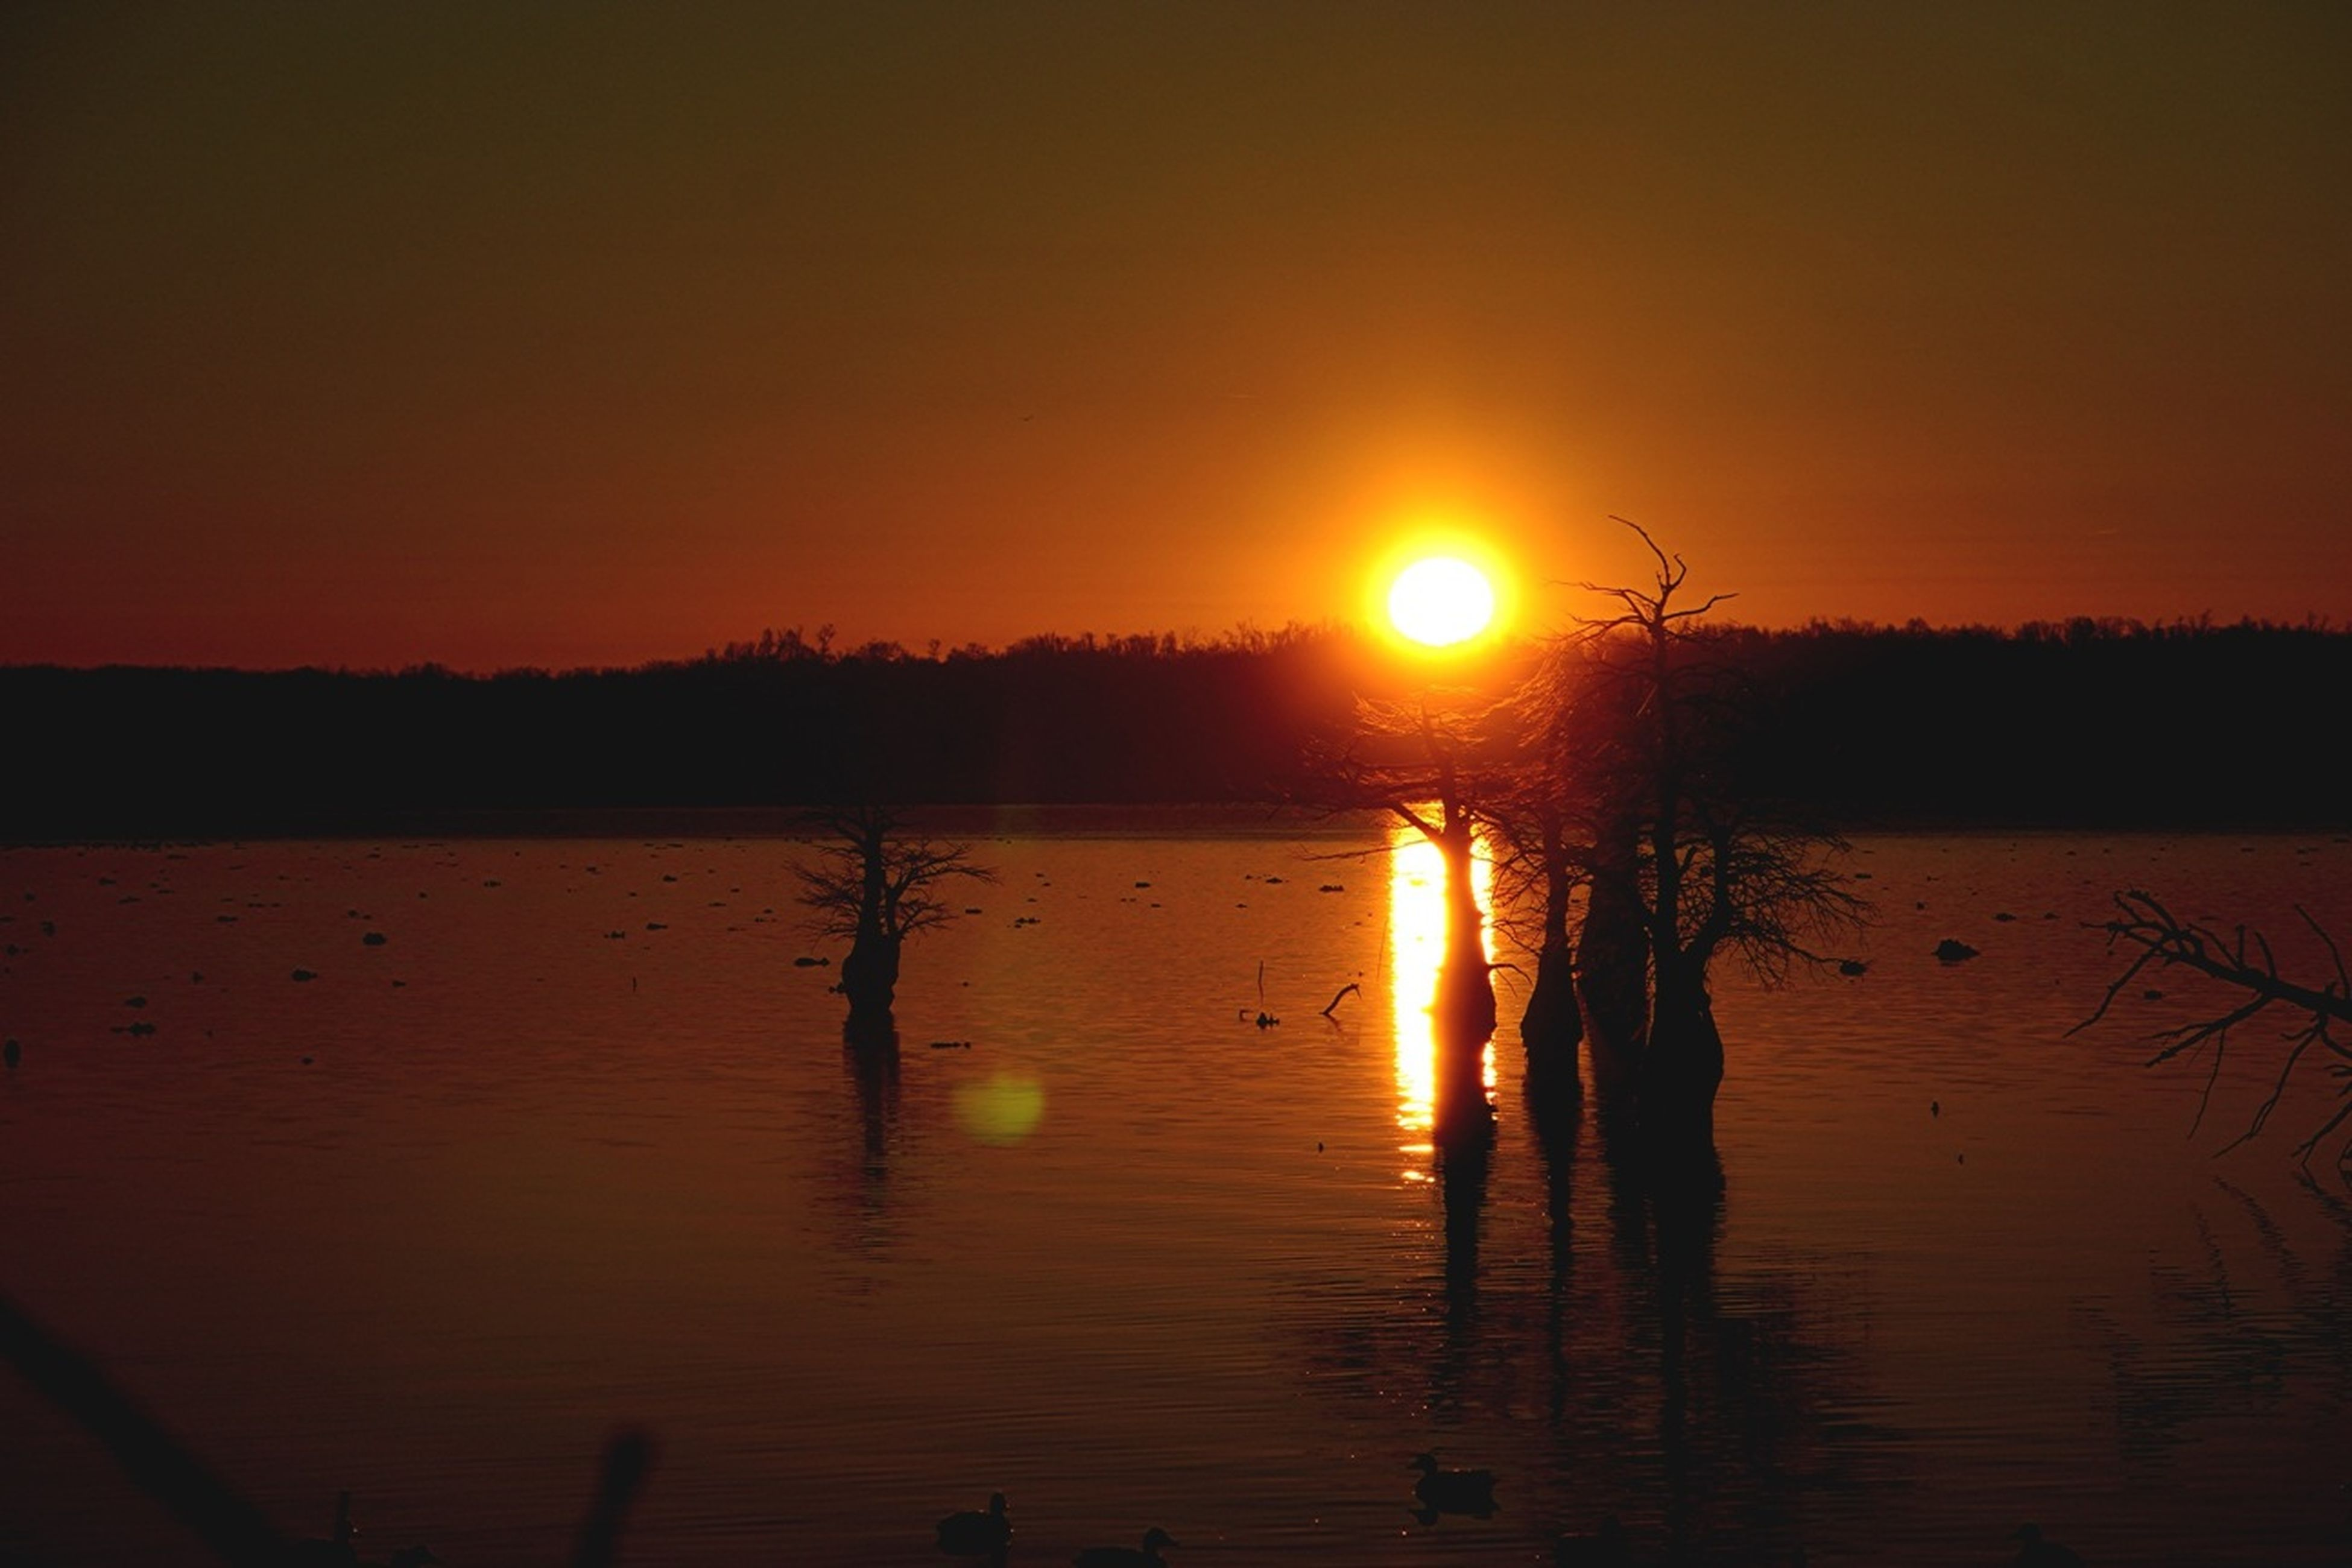 sunset, sun, water, reflection, orange color, tranquil scene, silhouette, scenics, tranquility, beauty in nature, lake, nature, idyllic, sunlight, sky, waterfront, bird, outdoors, non-urban scene, river